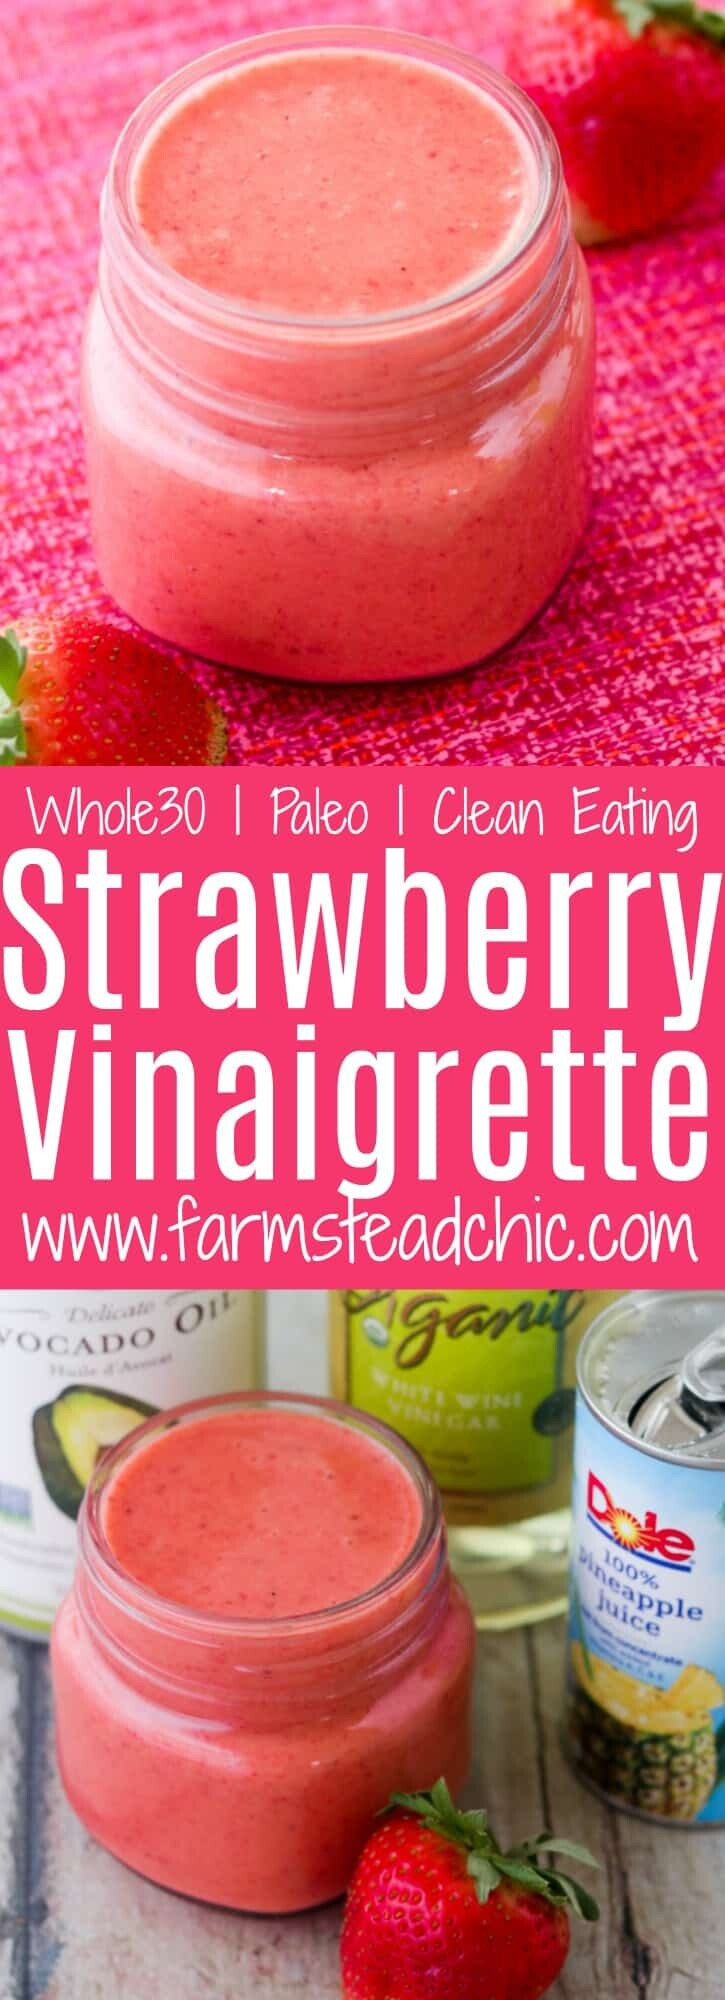 Get this this Paleo and Whole30 Strawberry Vinaigrette Dressing on your springtime dinner table! Made with only fresh strawberries, white wine vinegar, avocado oil and 100% pineapple juice, this fresh summer dressing is cheap, simple and easy. Primal, dairy free and vegetarian + vegan friendly!